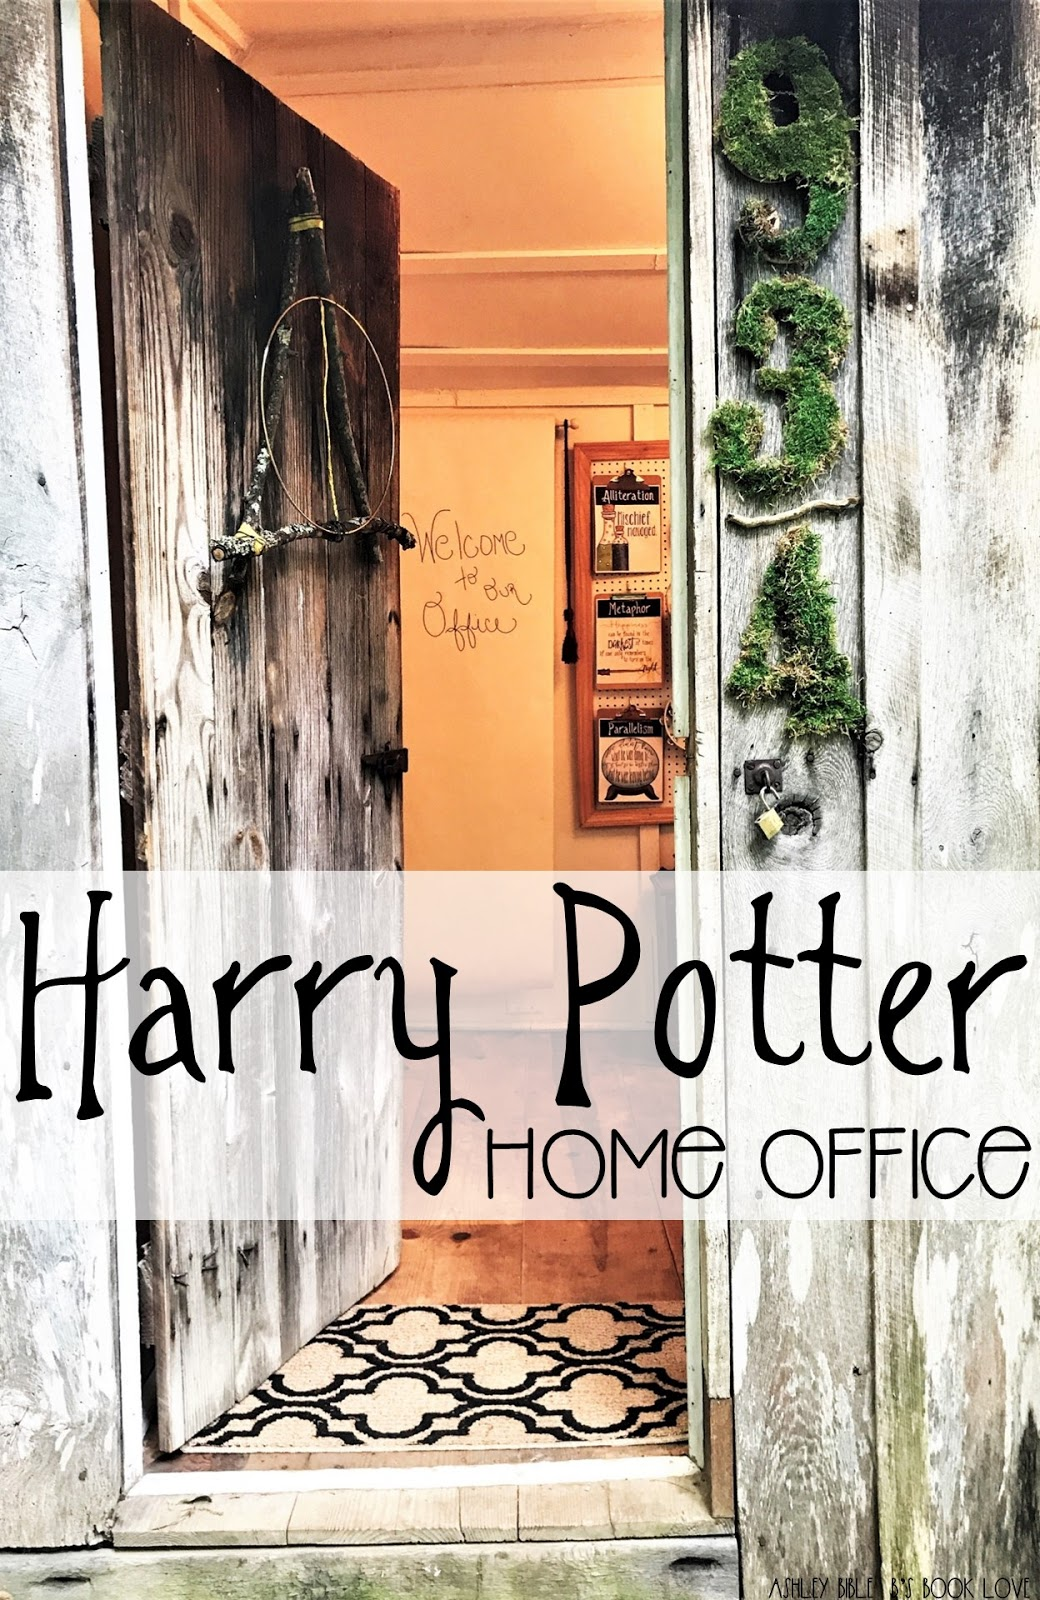 Harry Potter Home Office